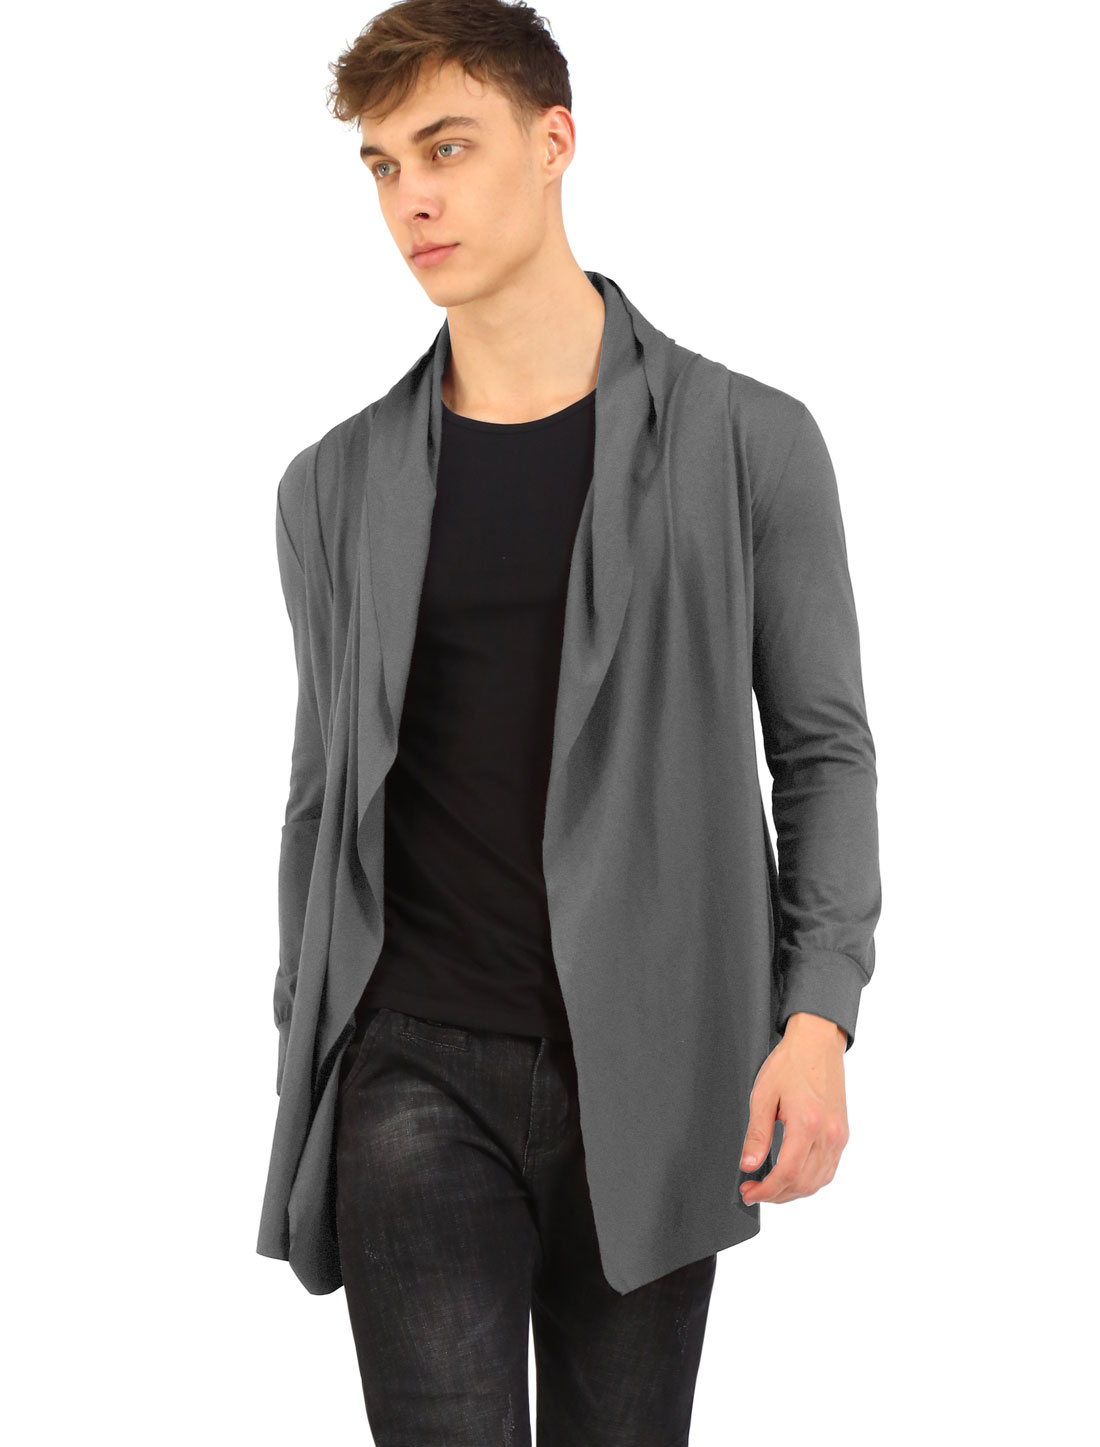 Men Front Open Side Pockets Irregular Hem Leisure Long Cardigan Gray M